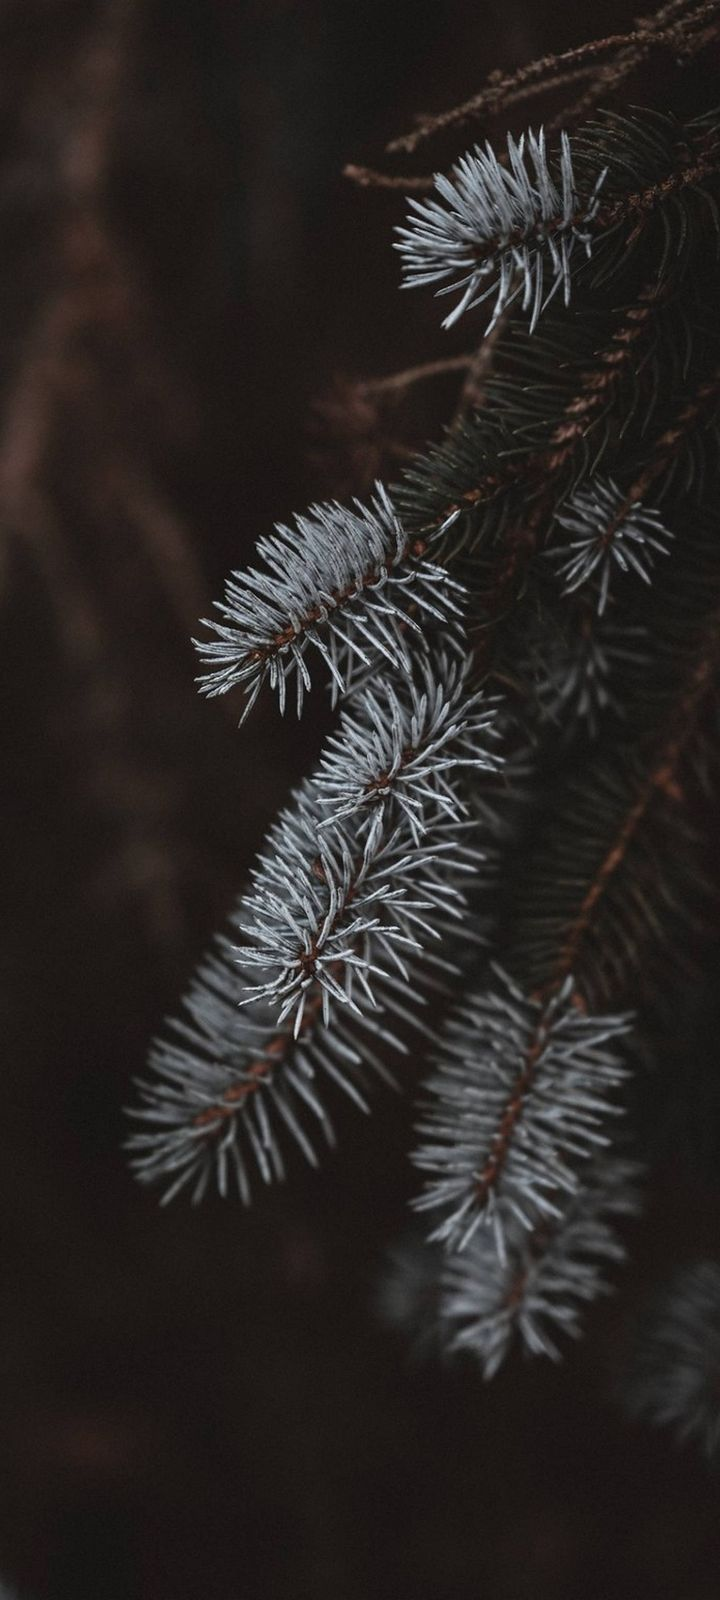 Macro Spruce Branches Wallpaper 720x1600